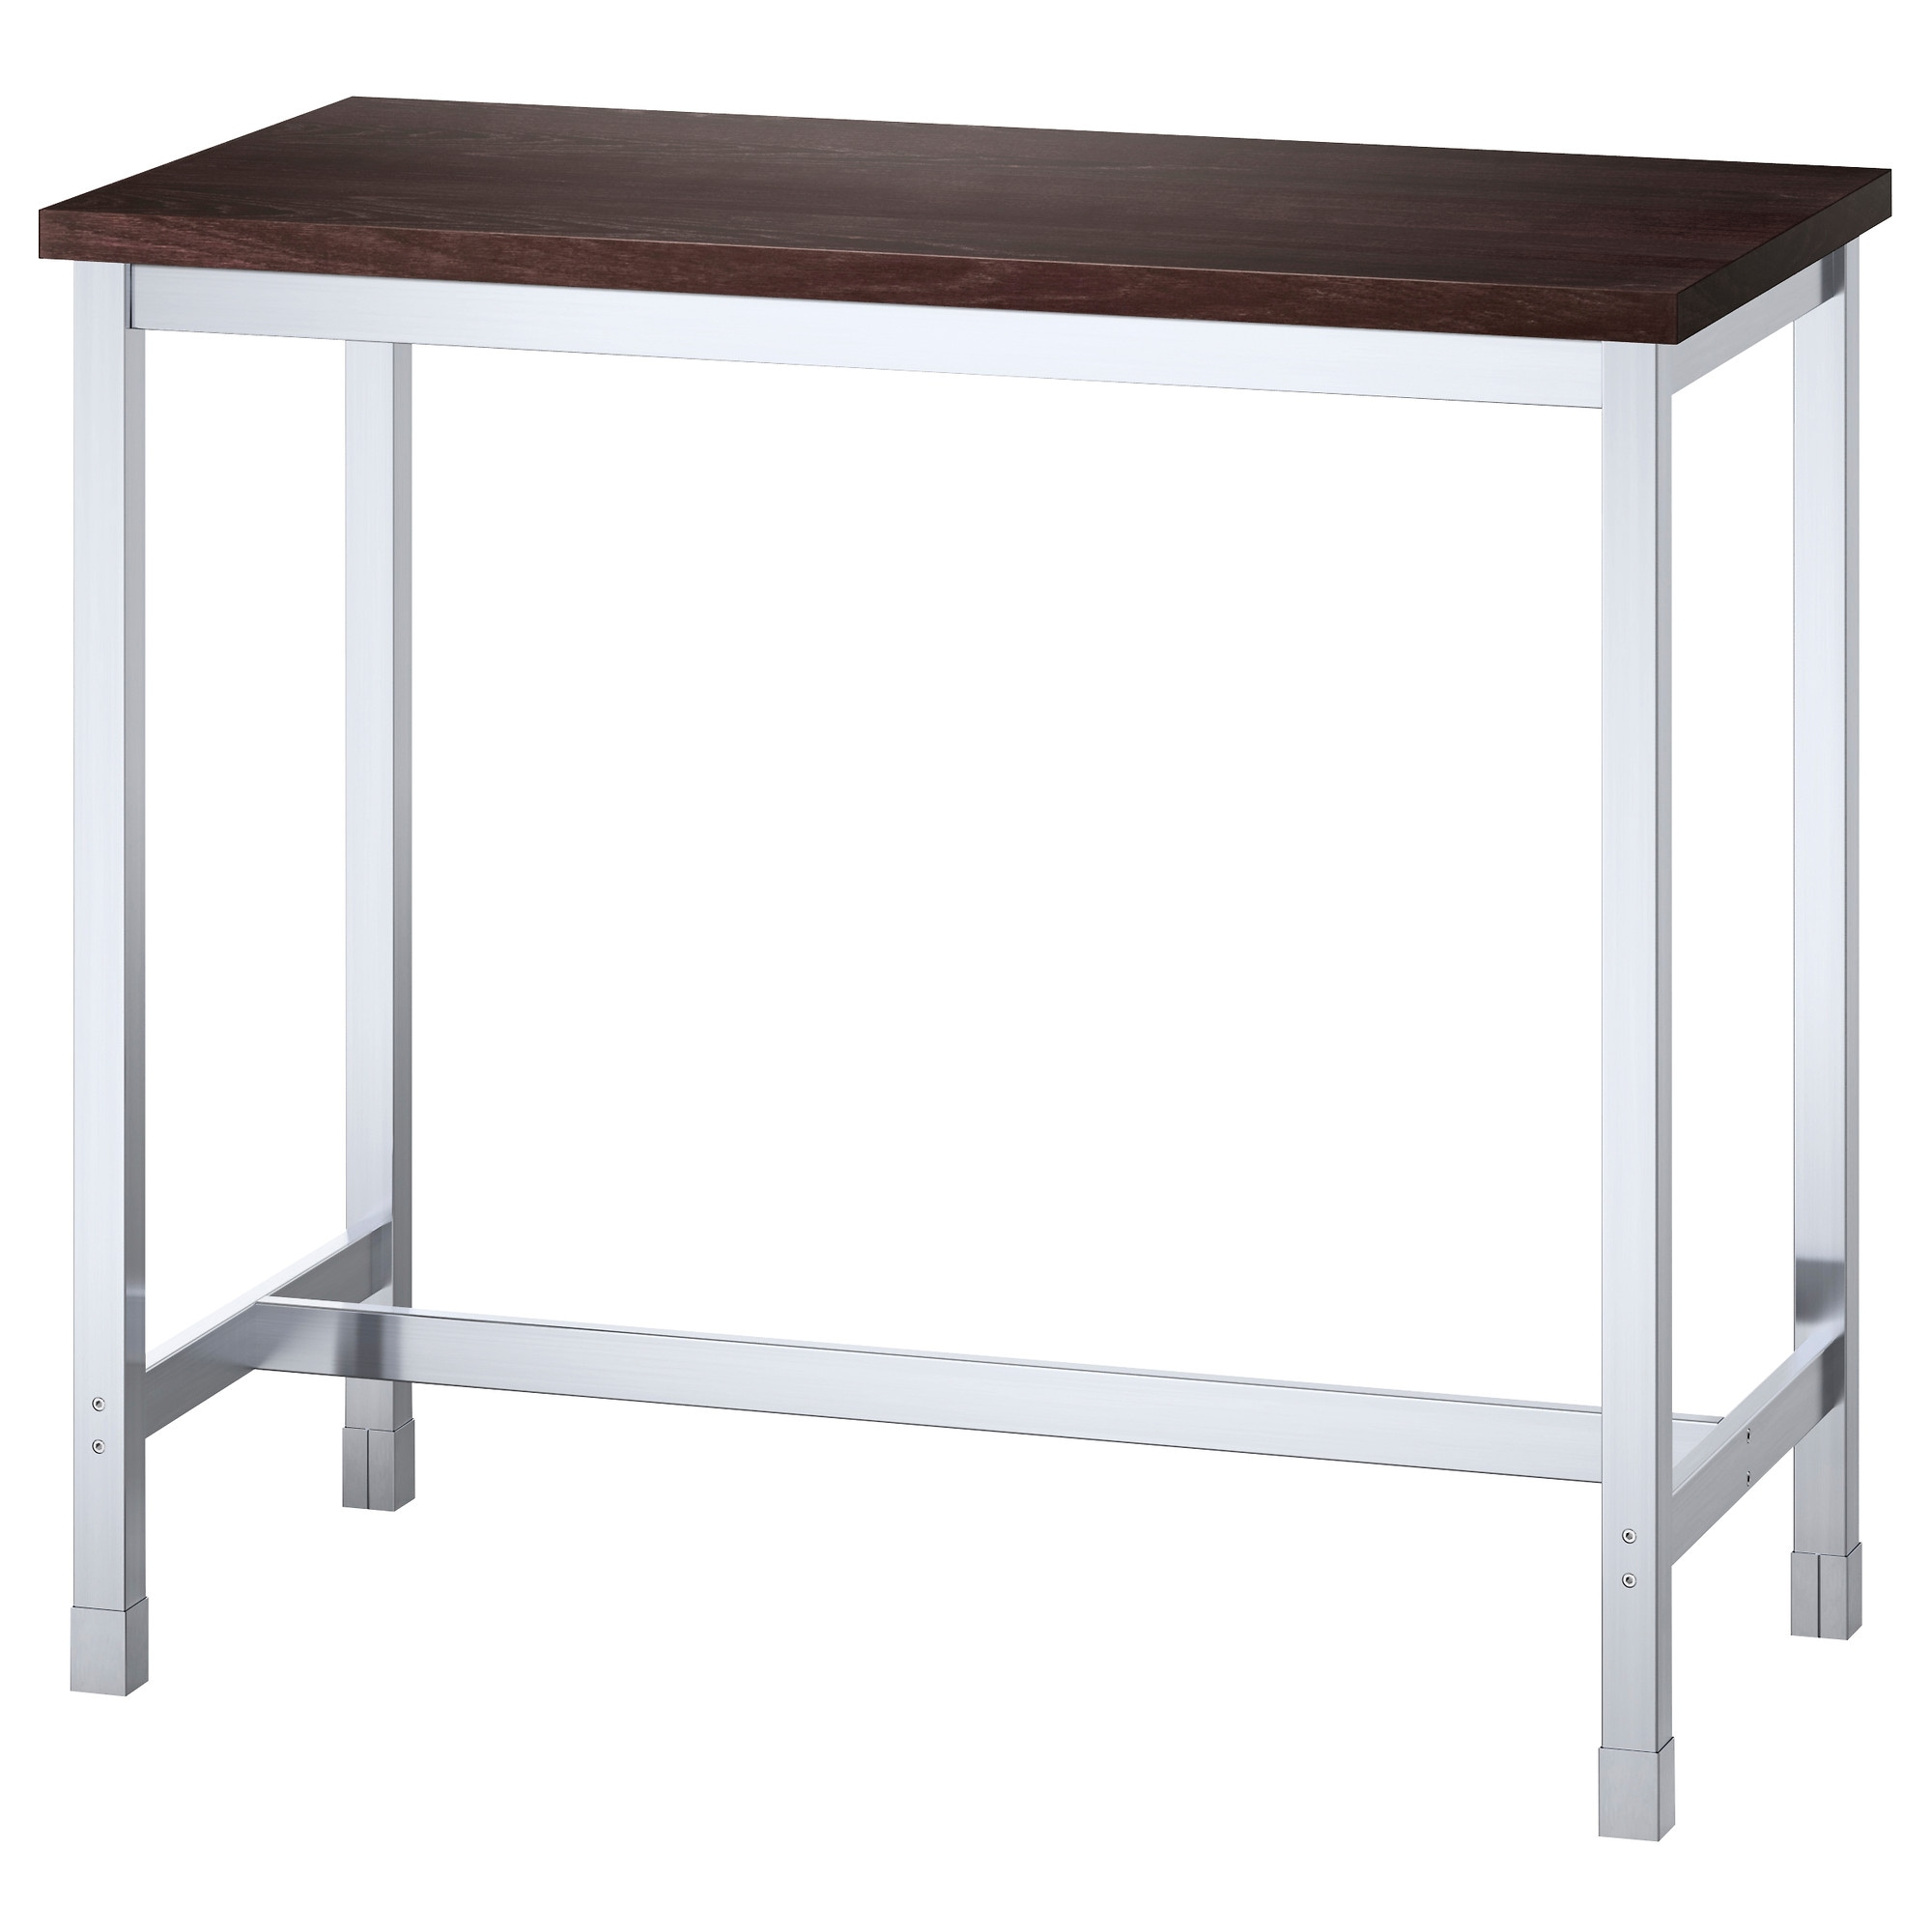 Table de bar utby for Achat table bar